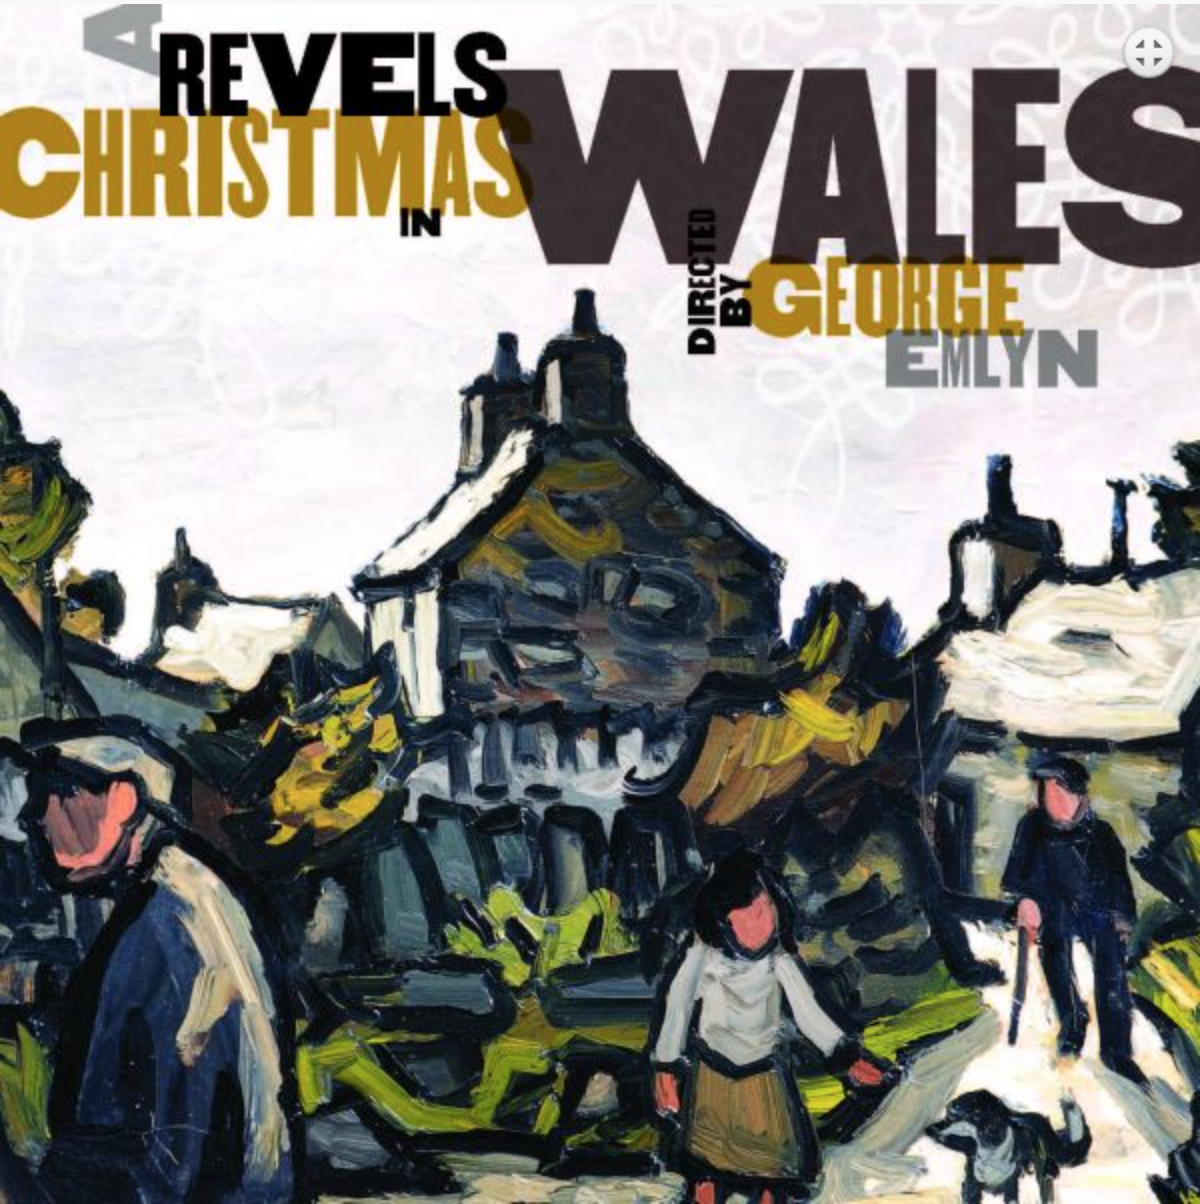 Revels presents: A Revels Christmas in Wales  Directed by George Emlyn, this album is sure to make you feel right at home in Wales, complete with all your favorite folk tunes in Welsh and English.